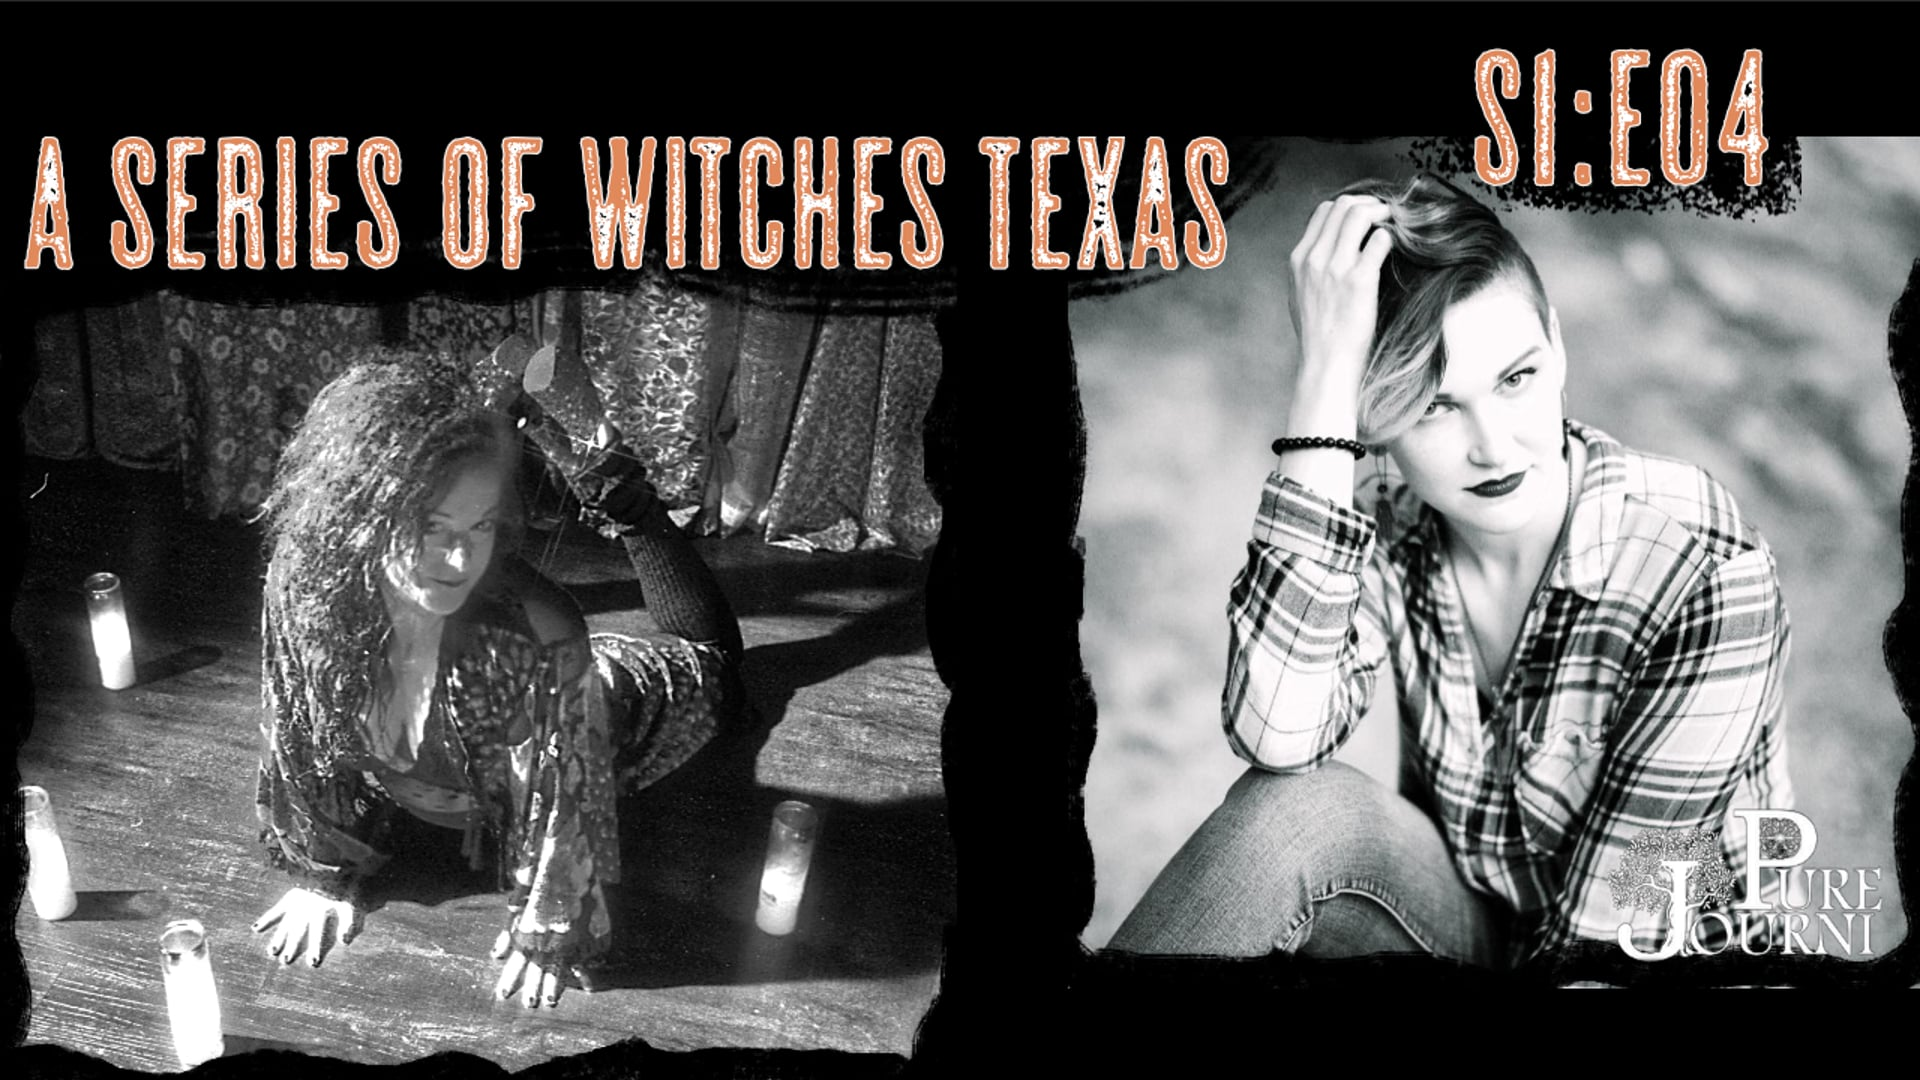 A Series of Witches S01:E04 Texas with Special Guest Crimson Minx and Heidi Summers